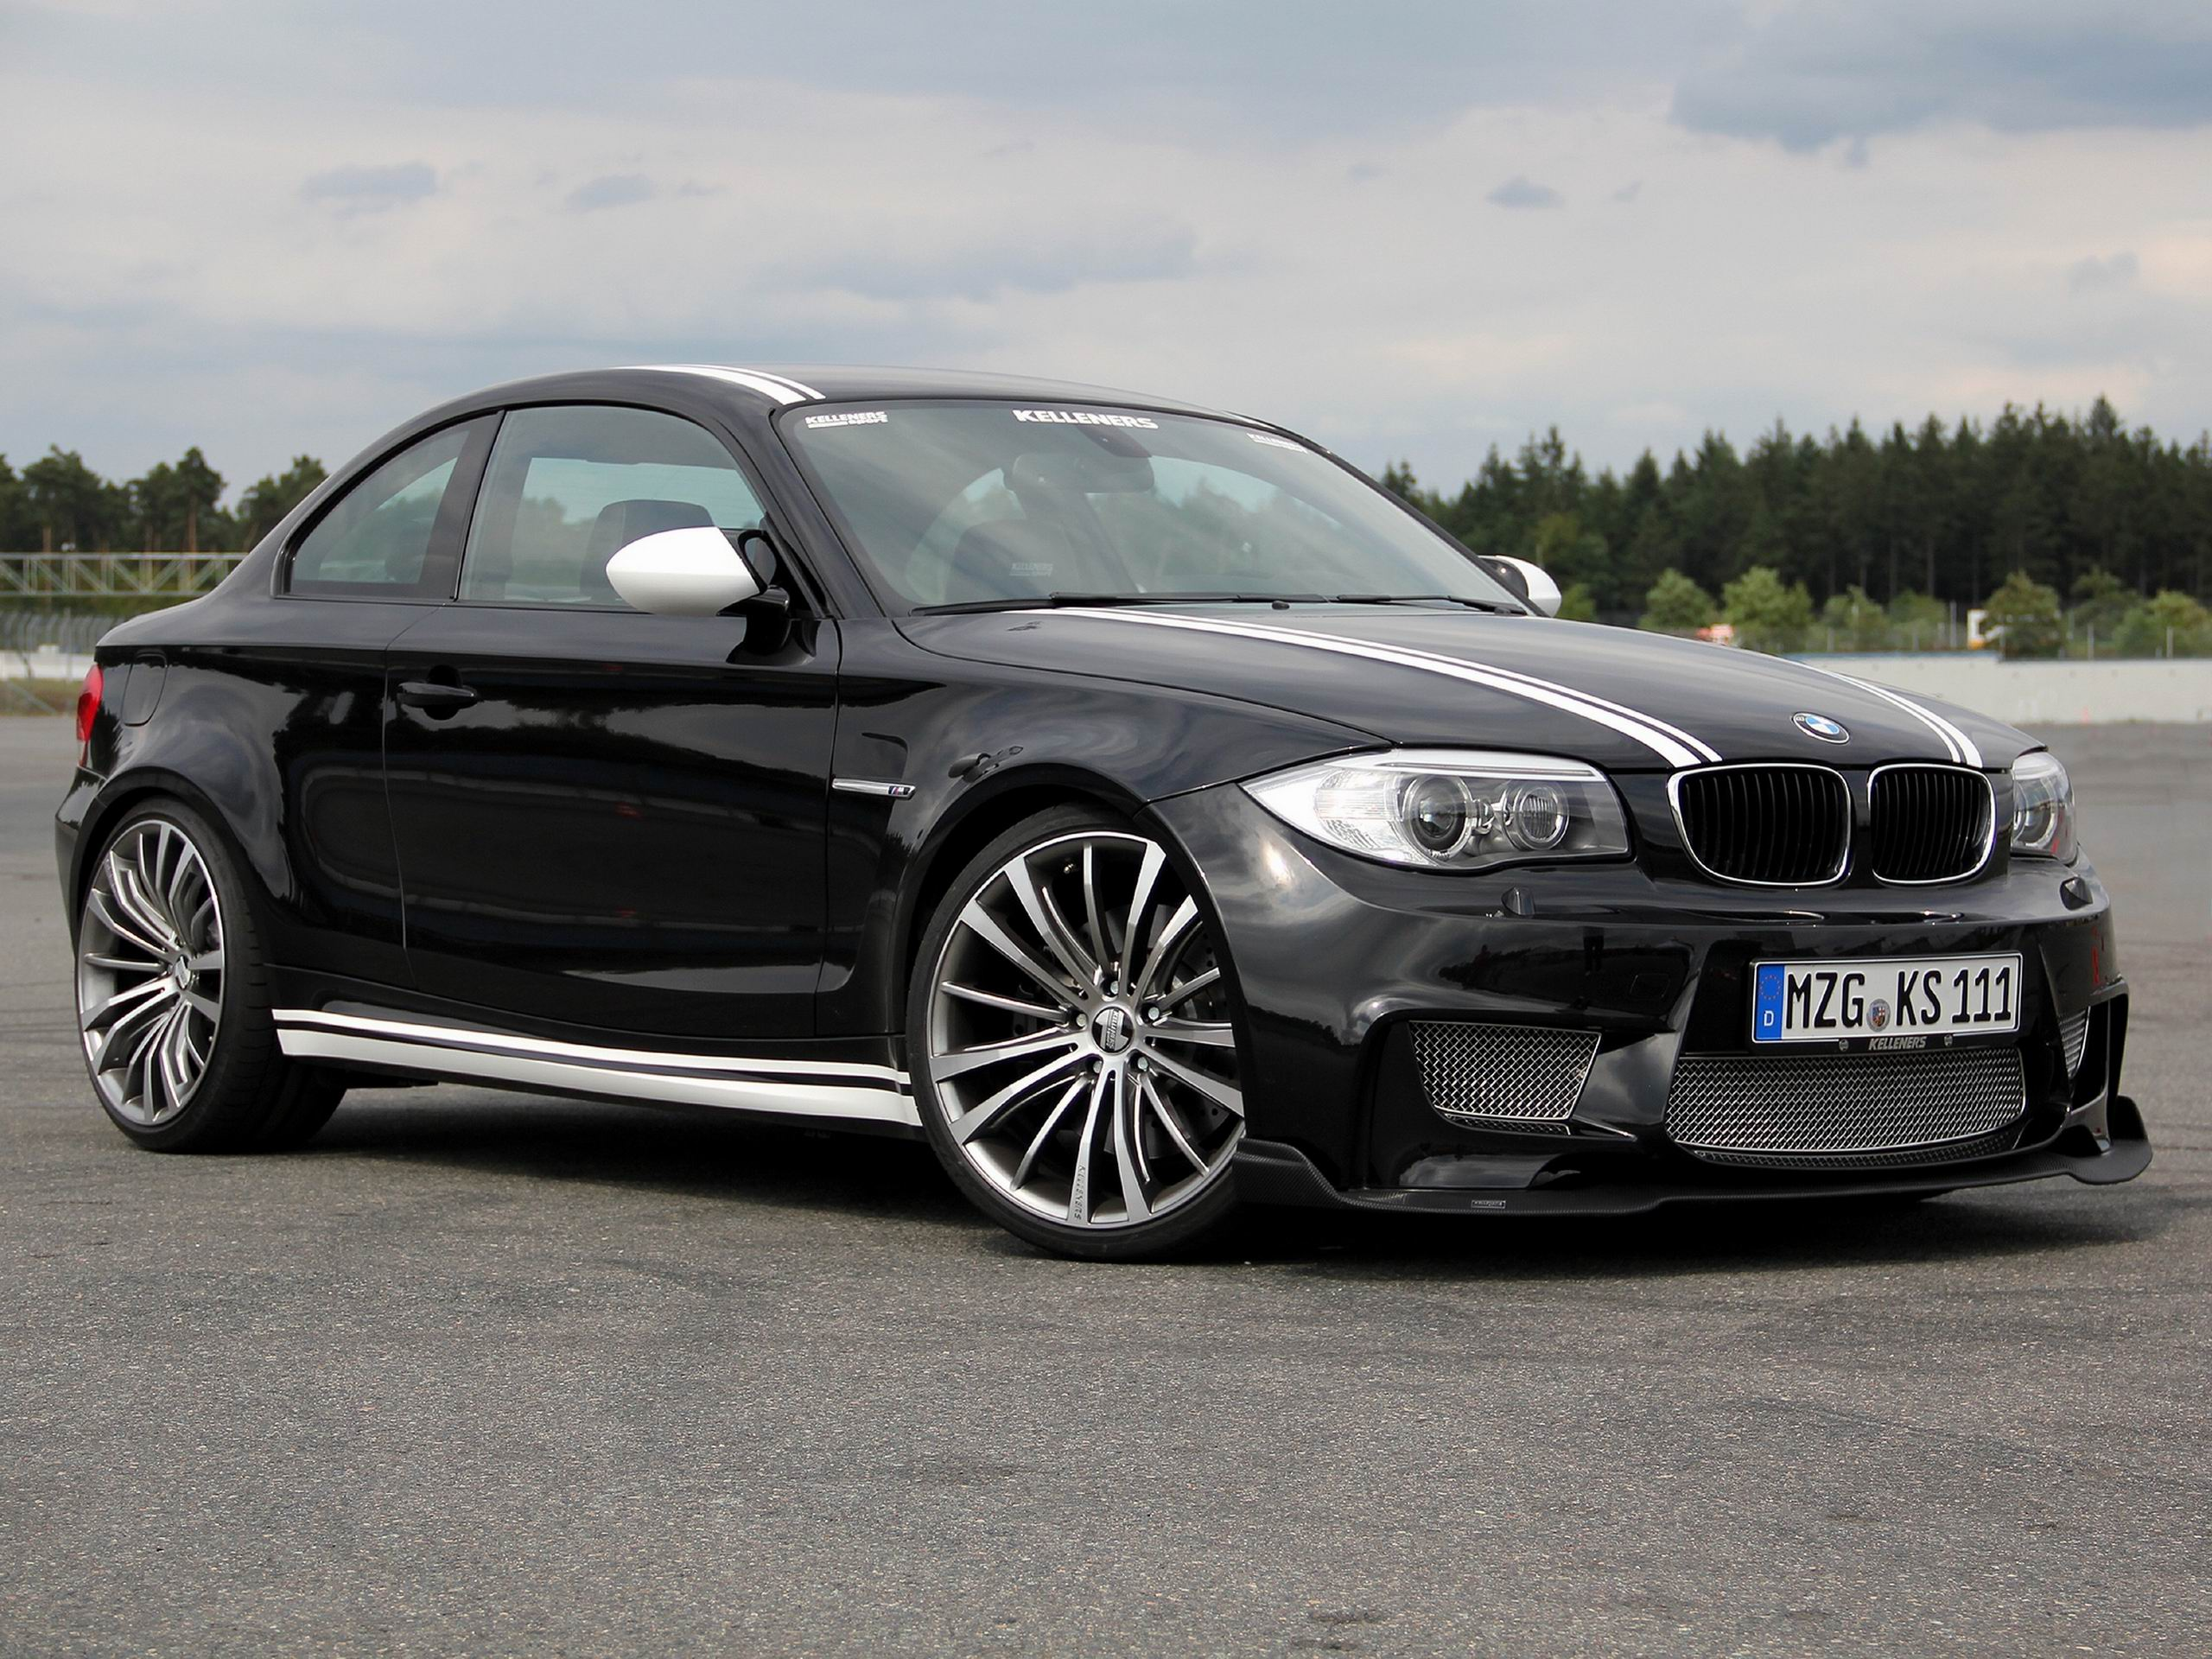 bmw 1er coupe (e82) 2011 pictures #9